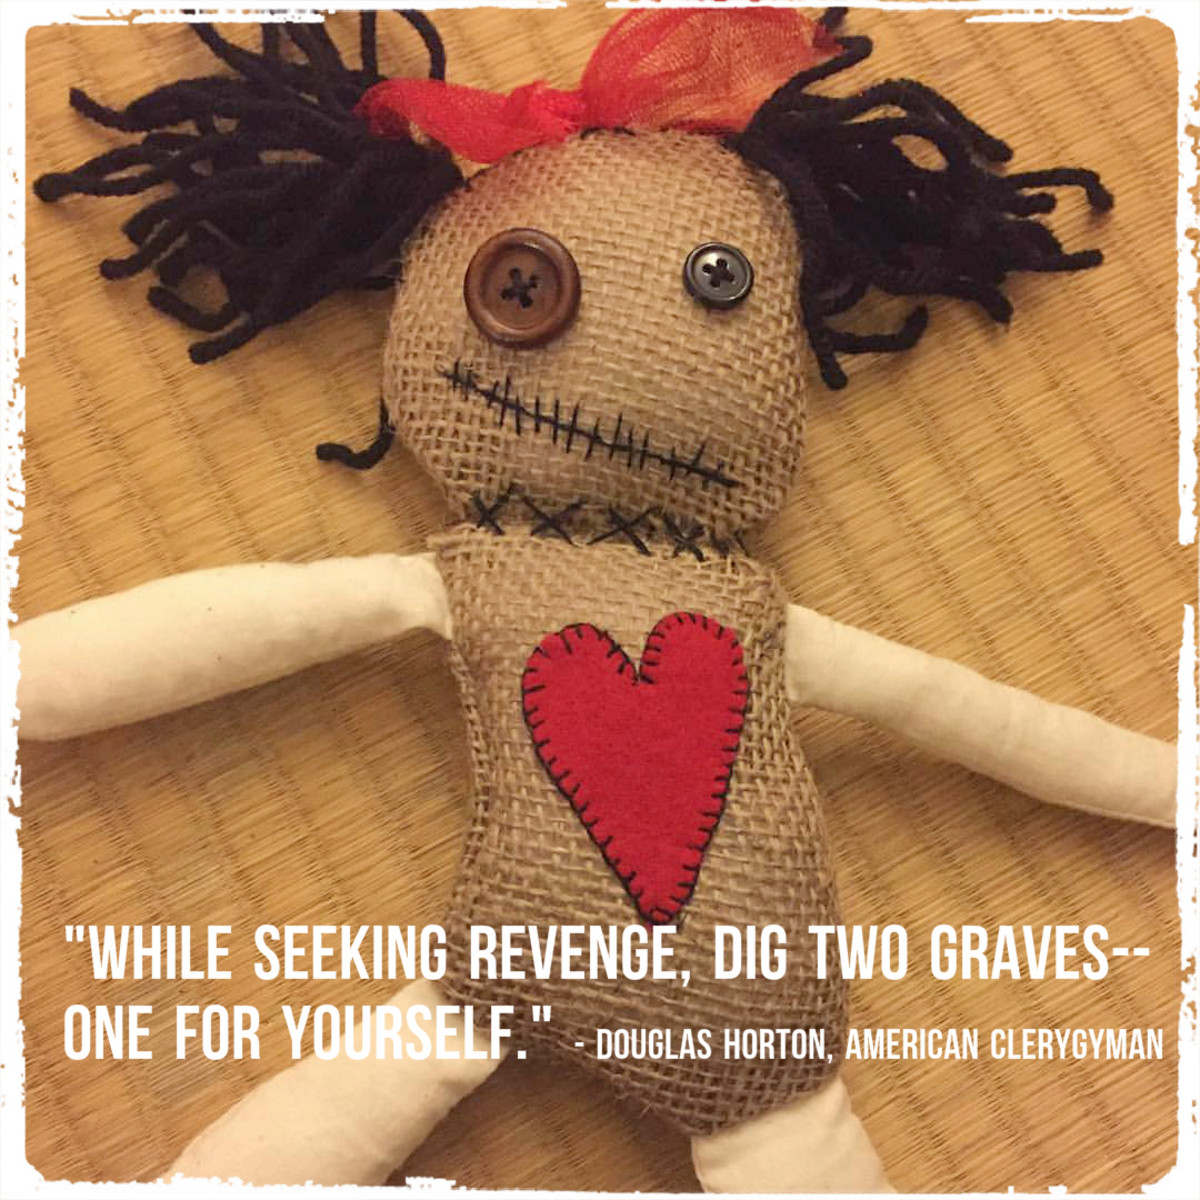 """""""While seeking revenge, dig two graves -- one for yourself."""" - Douglas Horton, American clergyman"""